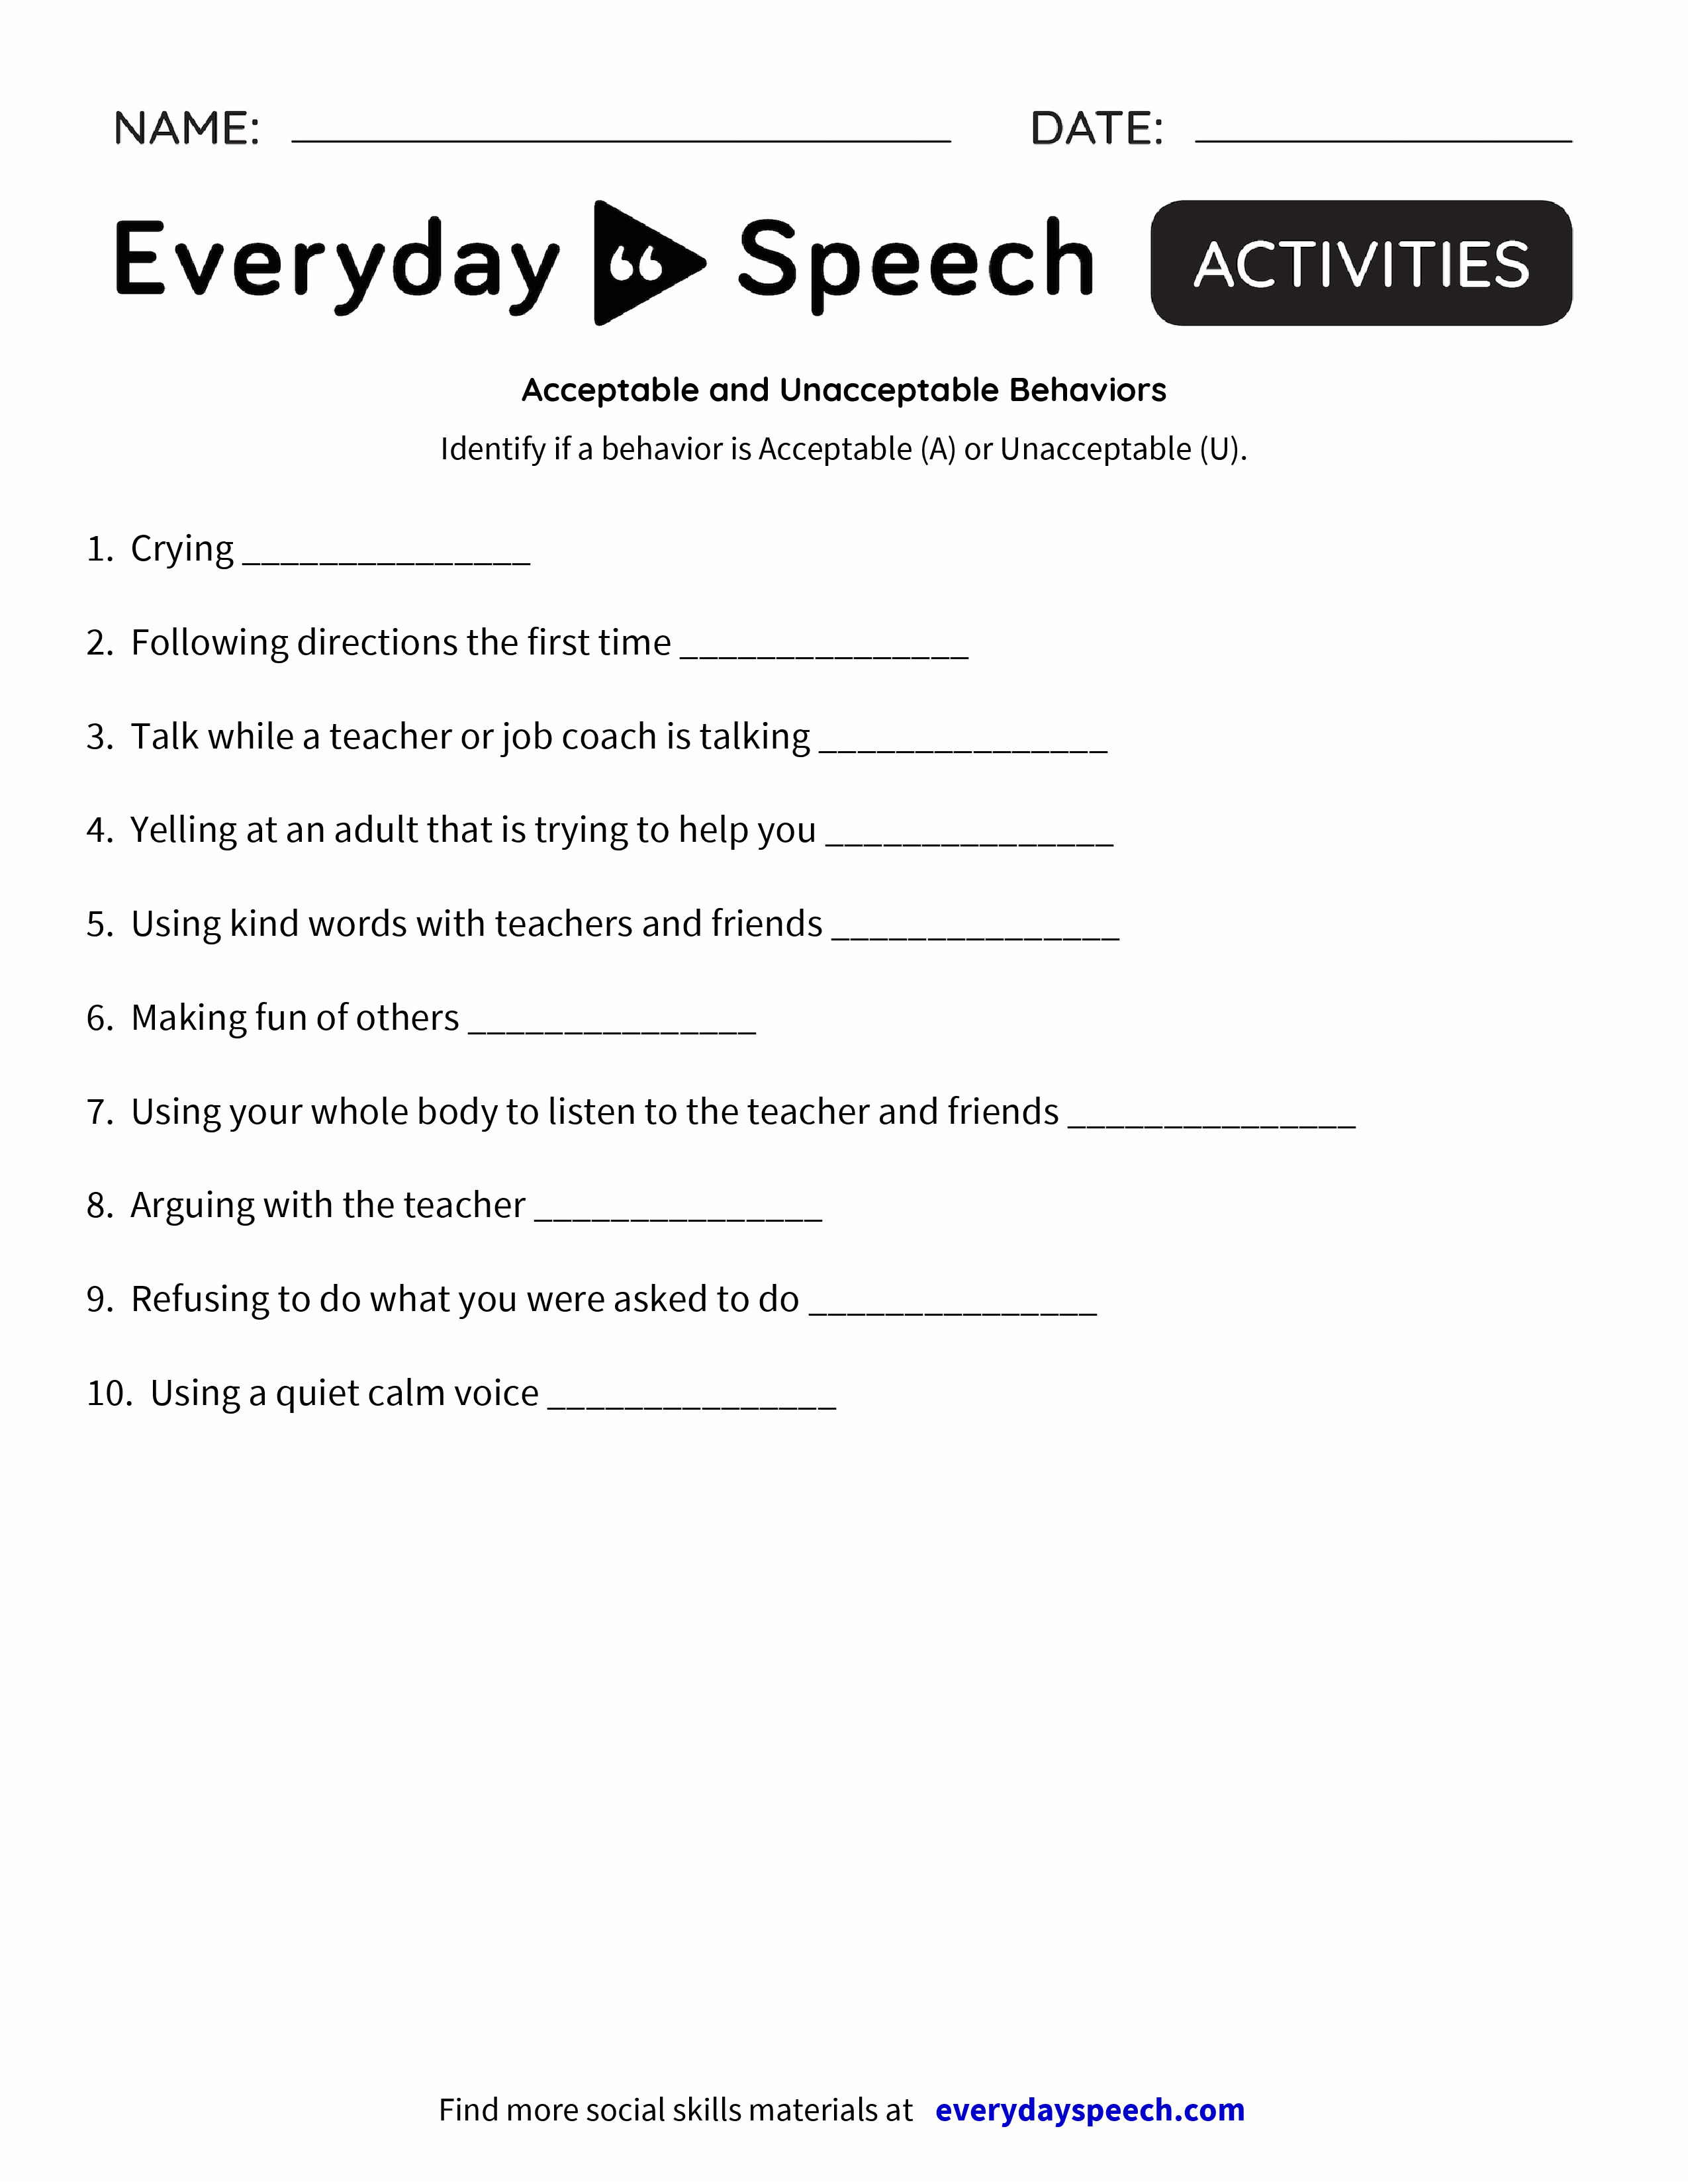 Worksheets Behavior Worksheets acceptable and unacceptable behaviors everyday speech preview